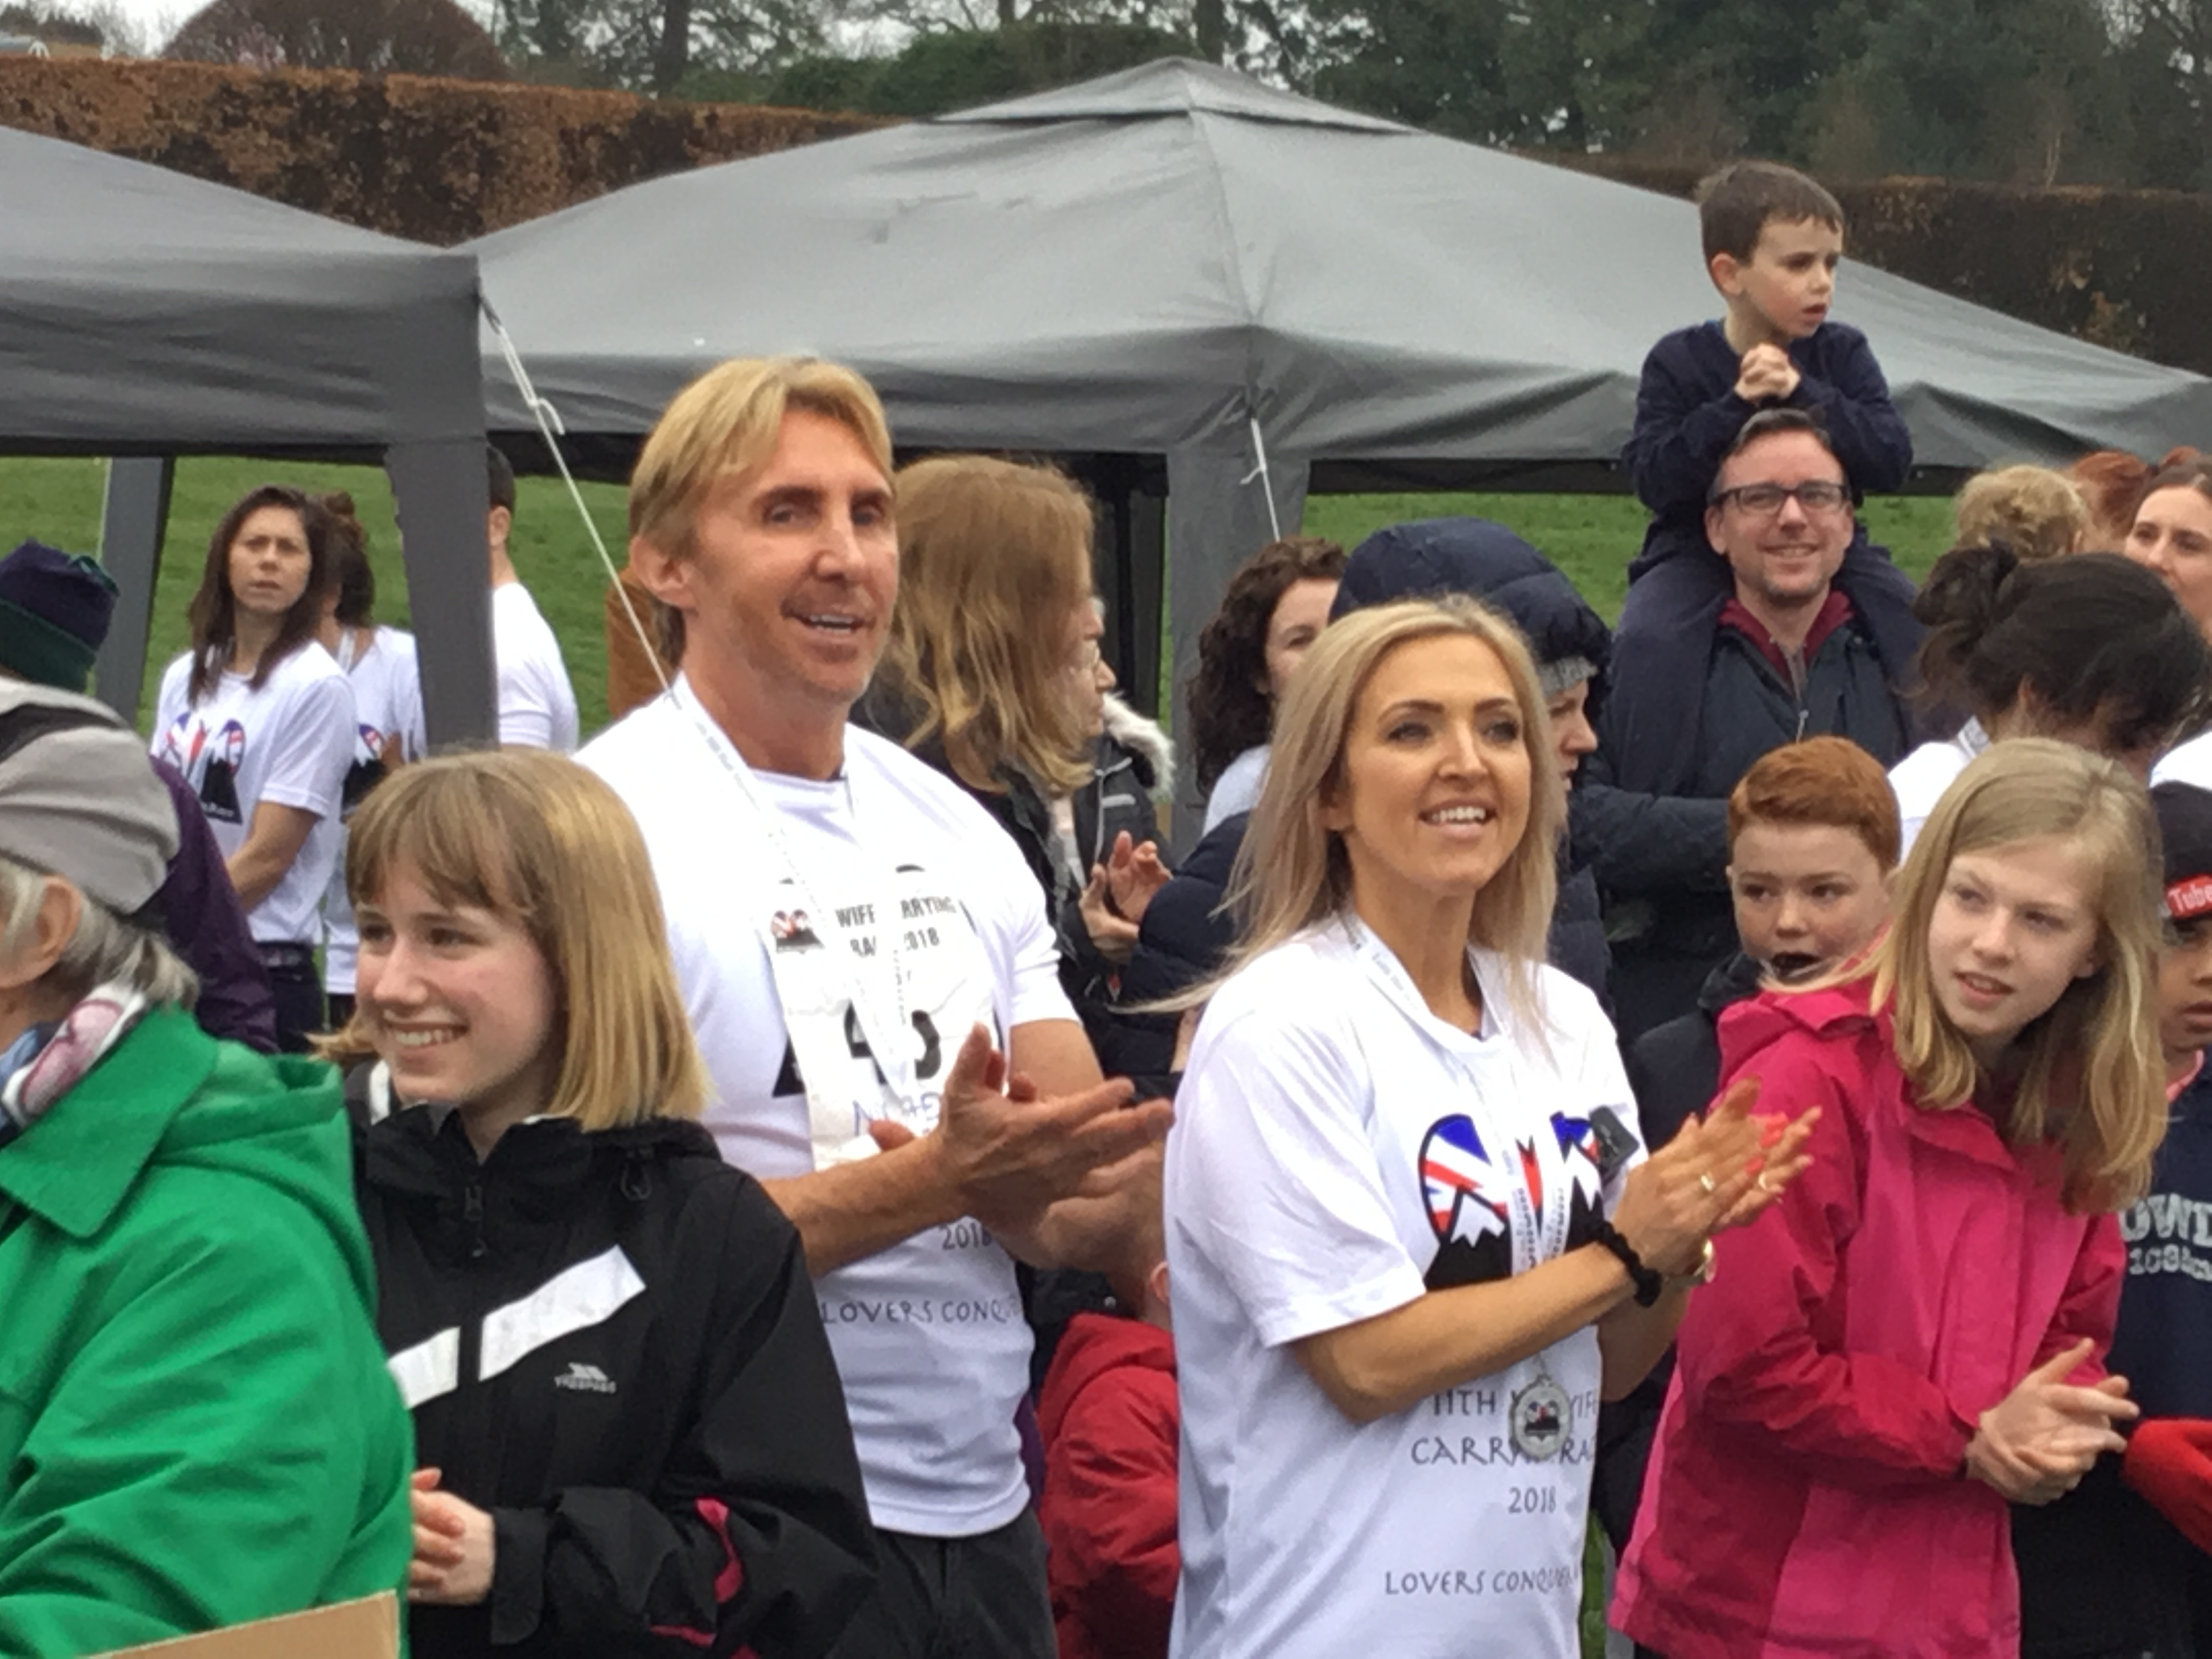 The Speakmans from ITV's 'This Morning' following the race